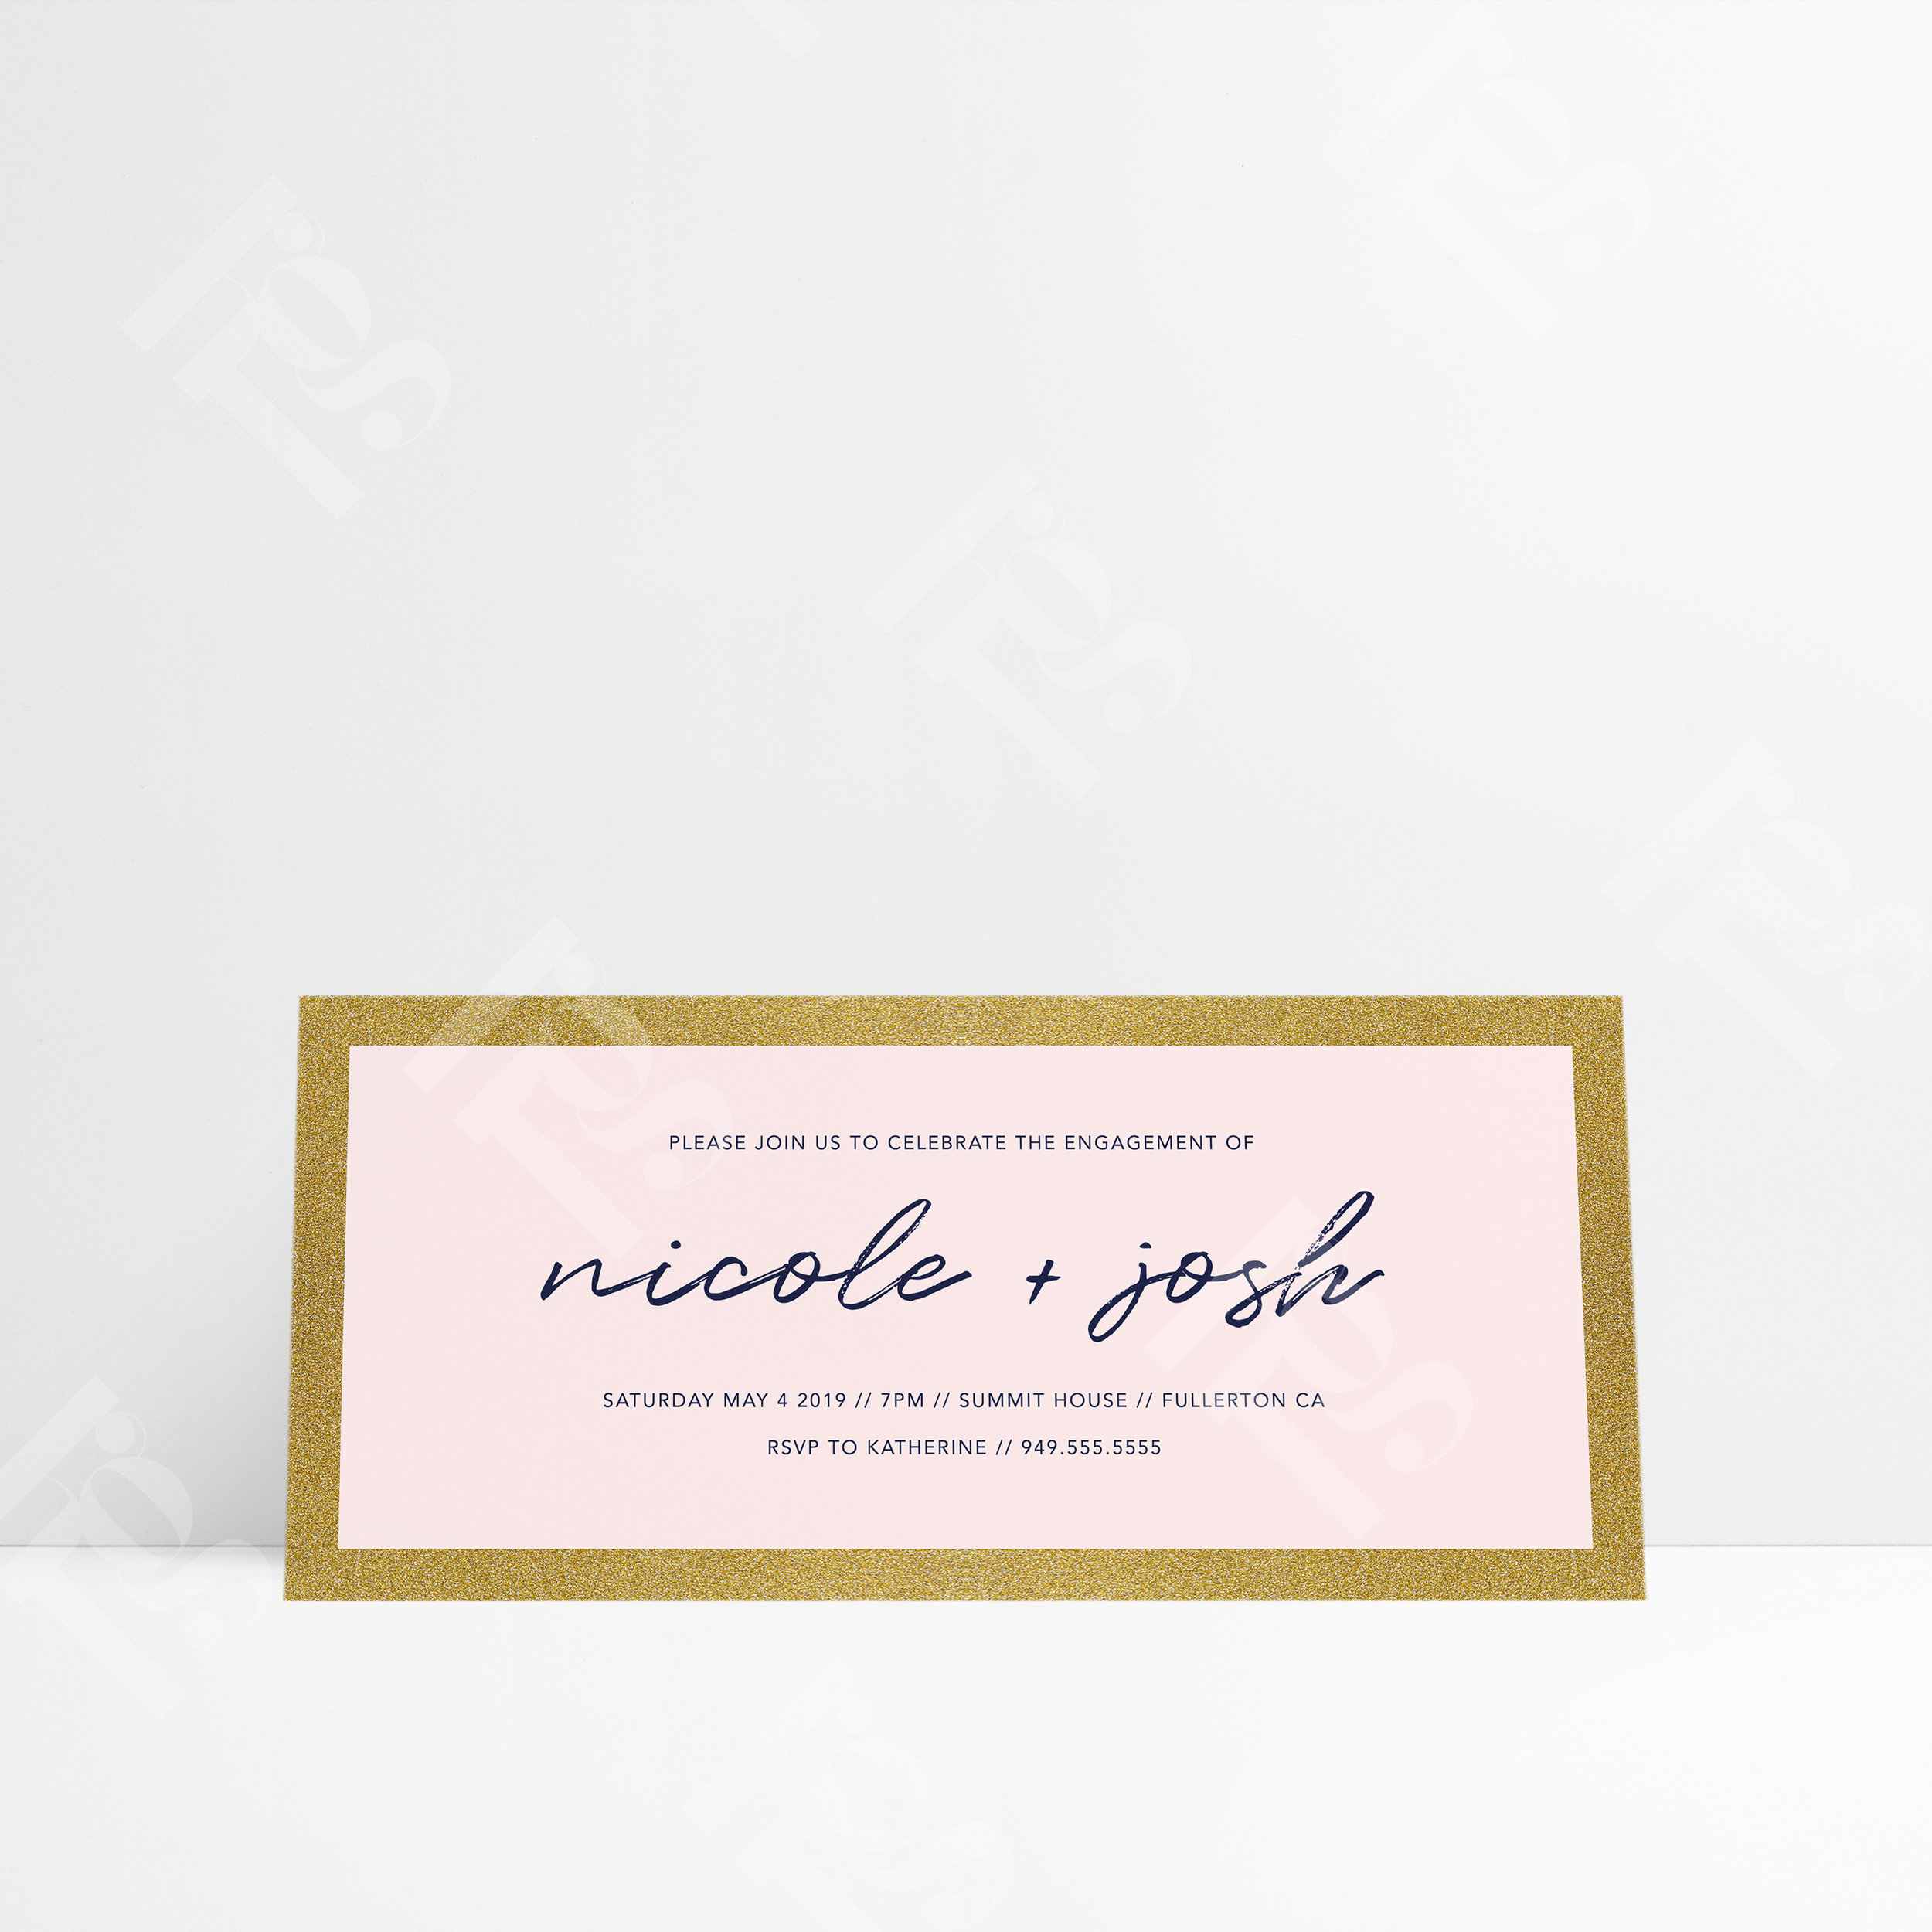 Love Letters Engagement Invitation Hello Good Times